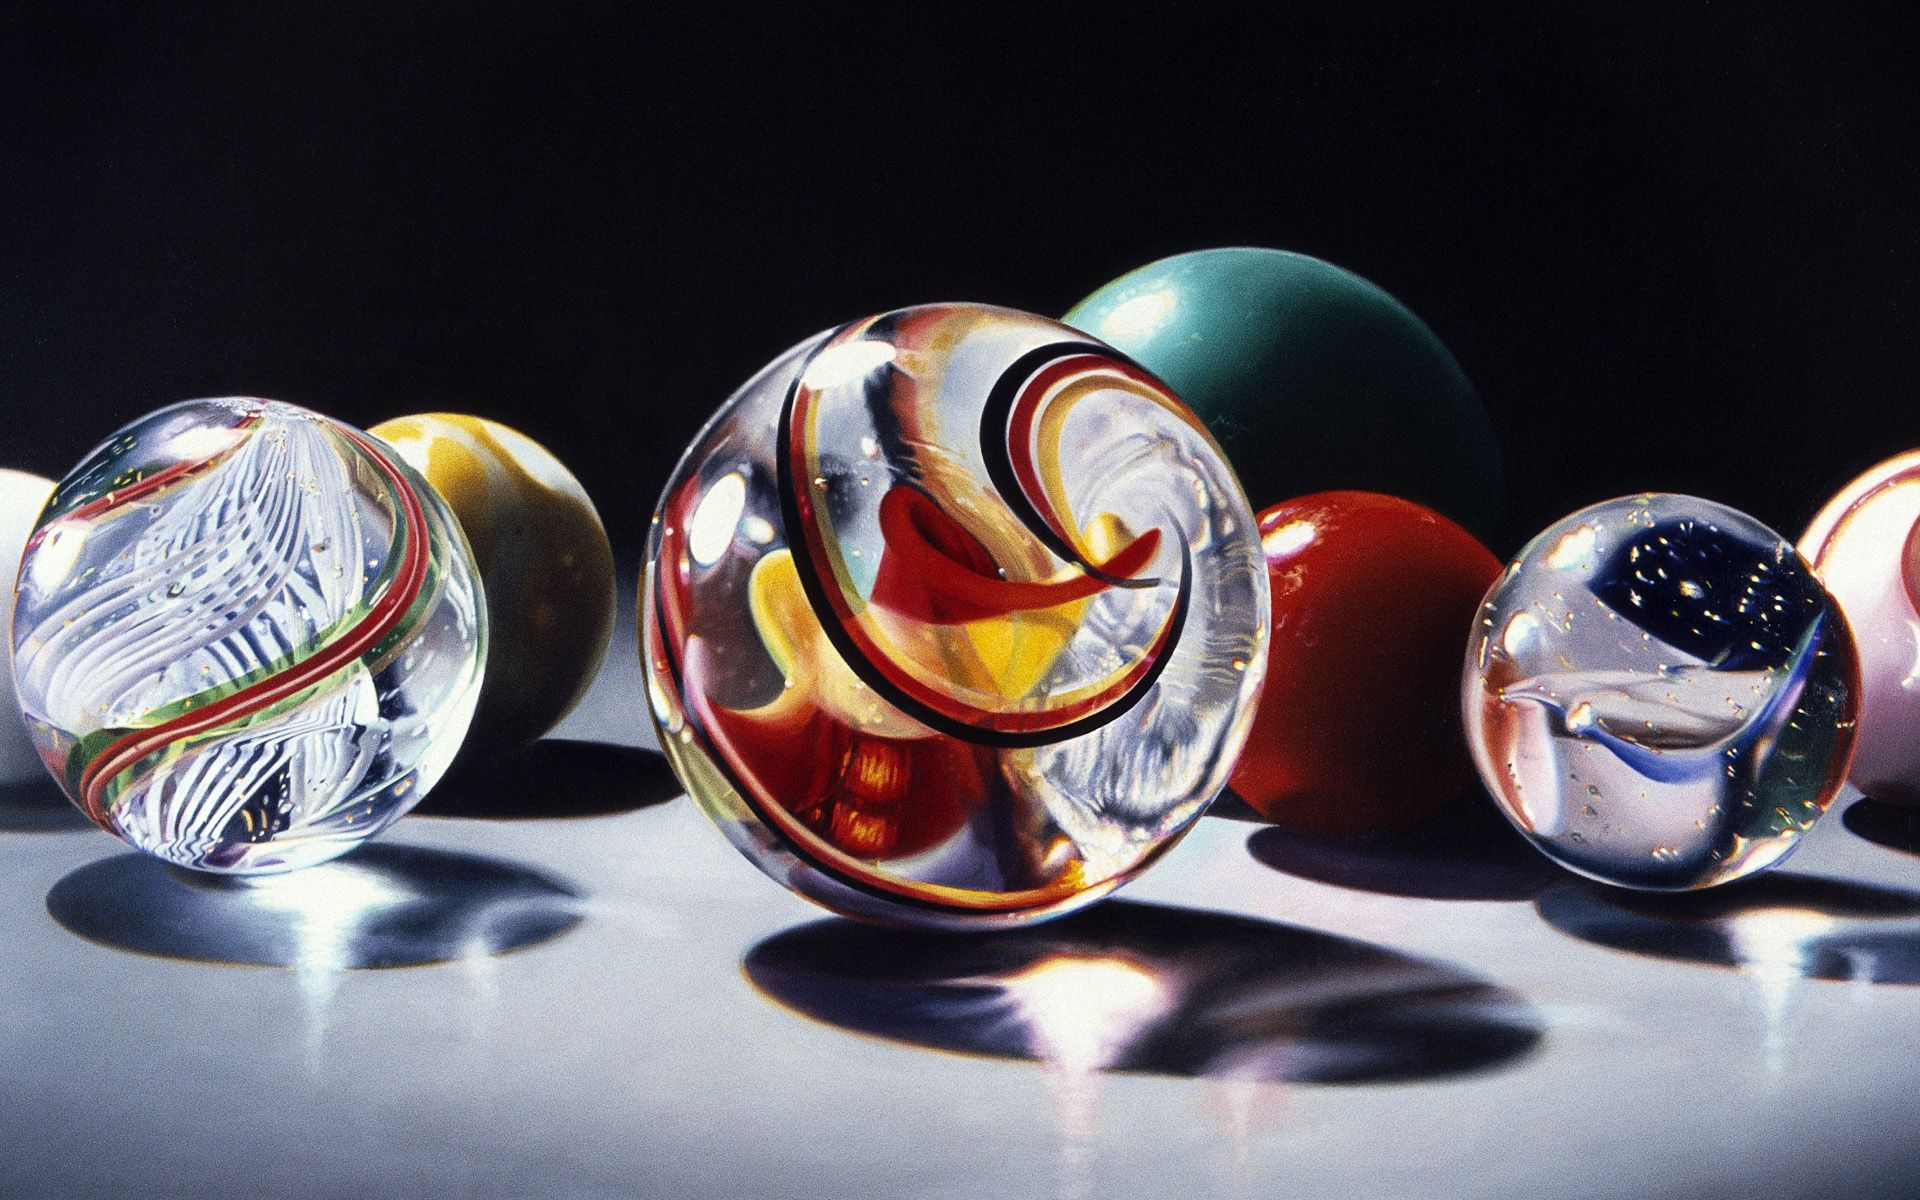 Must see Wallpaper Marble High Definition - 922920753478148a20ee7b8fb180d228  Snapshot_624213.jpg